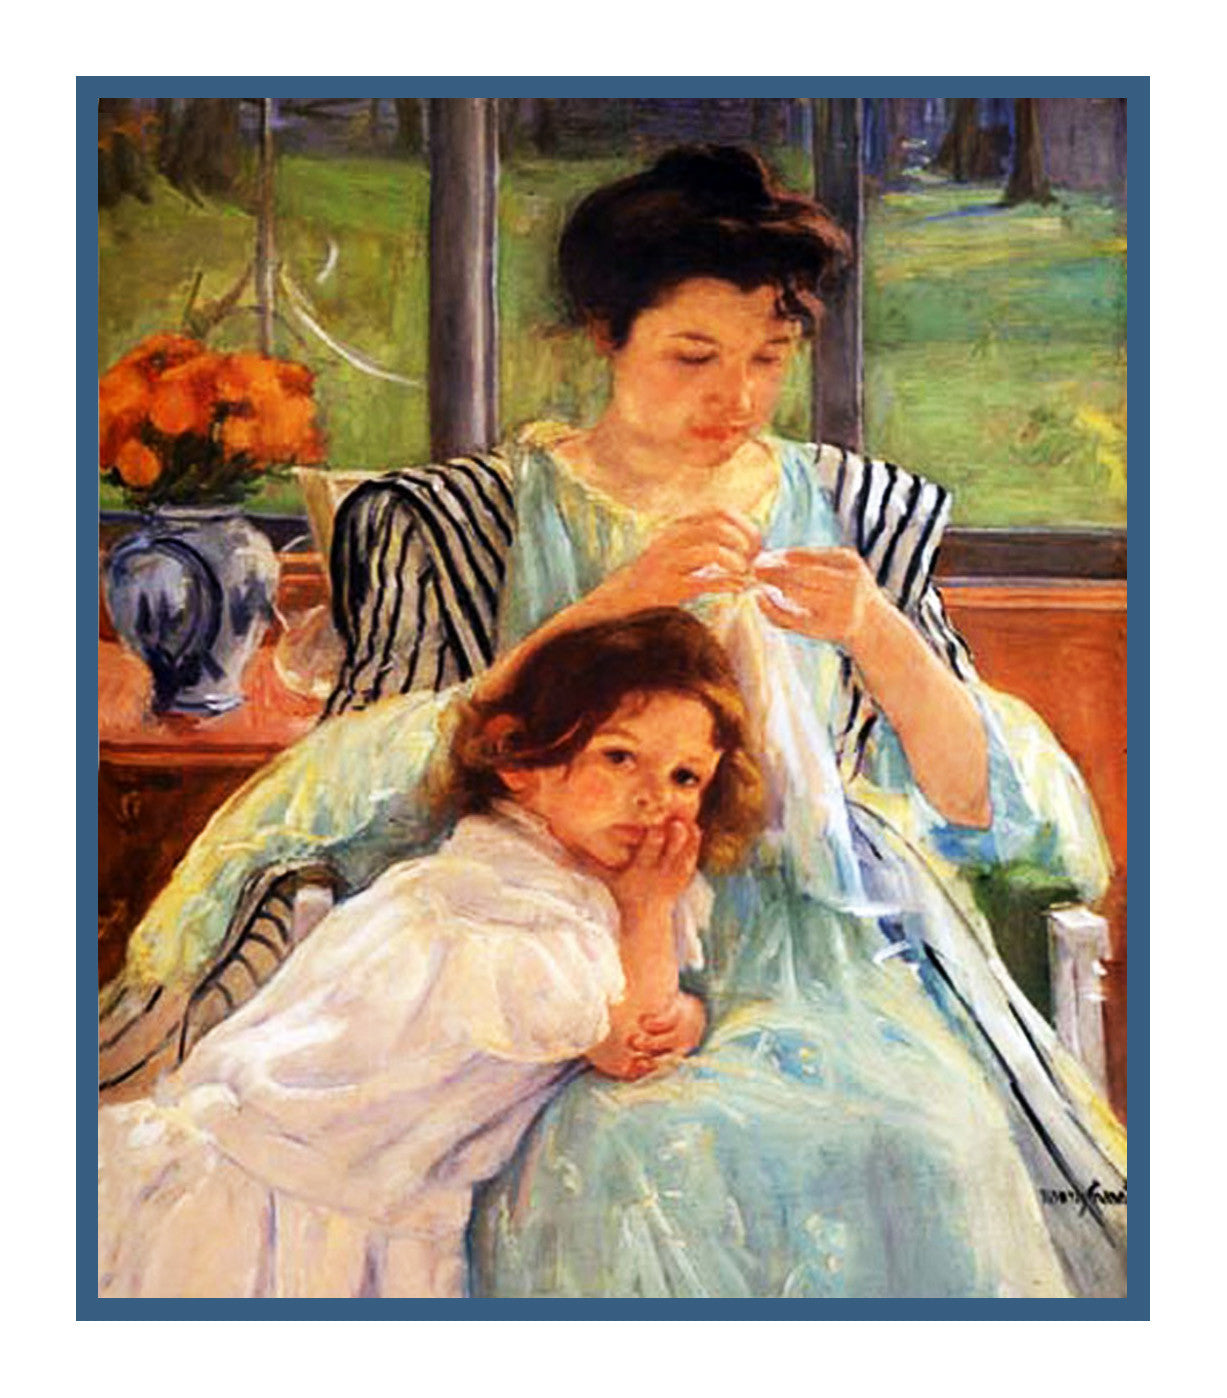 Young Mother Sewing By American Impressionist Artist Mary Cassatt Counted Cross Stitch Or Needlepoint Pattern